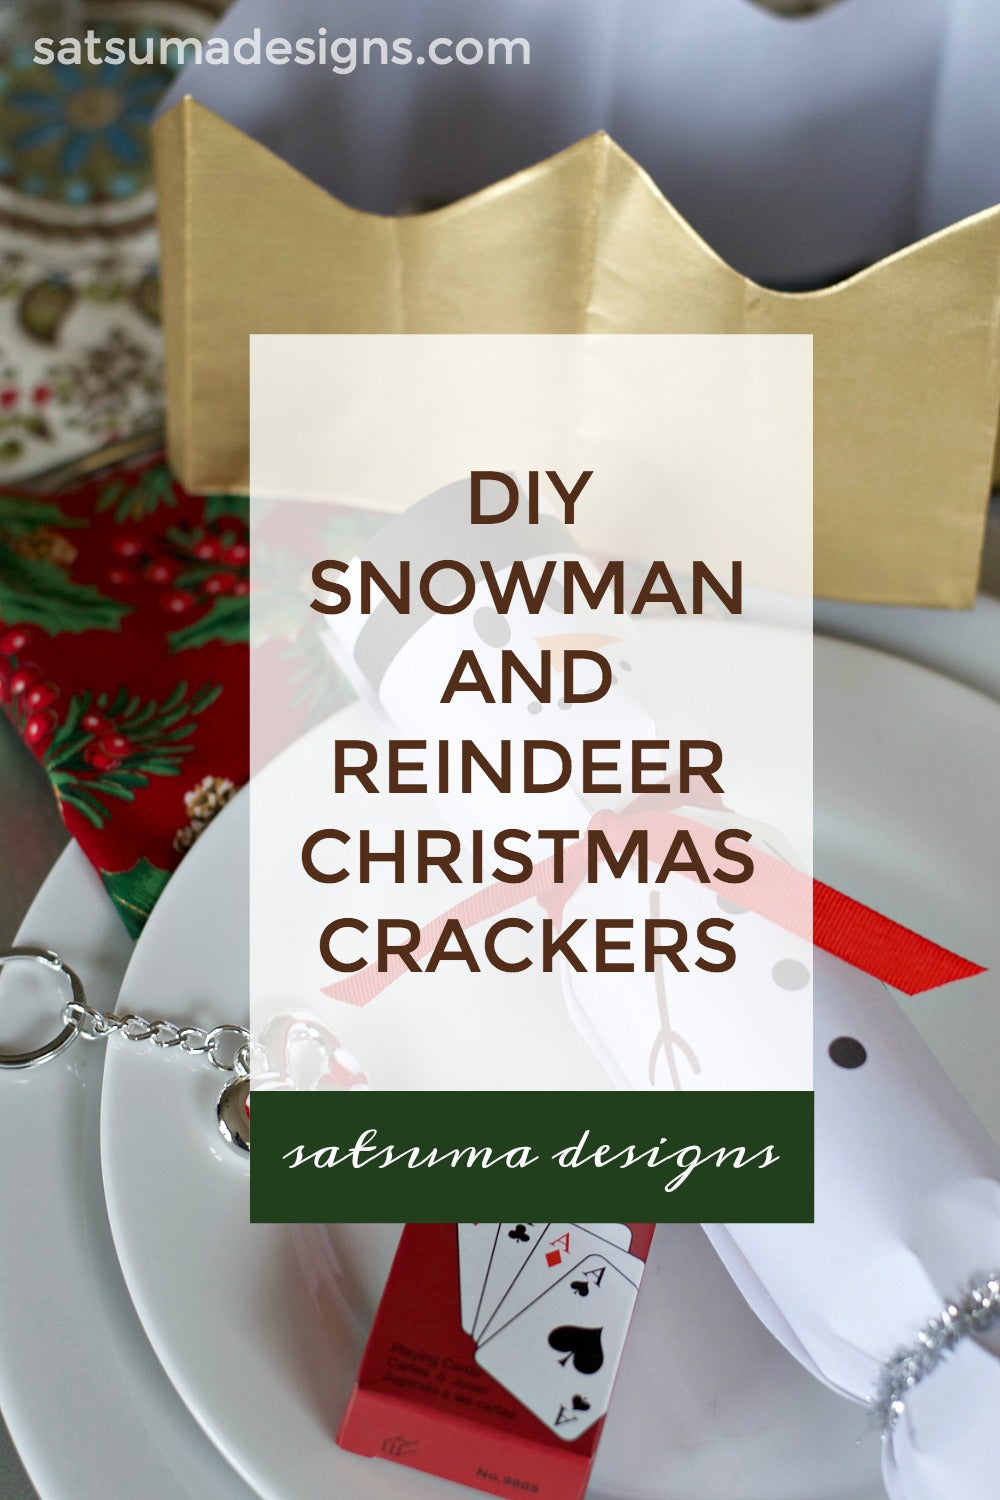 Diy Snowman And Reindeer Christmas Crackers With Free Printables Satsuma Designs